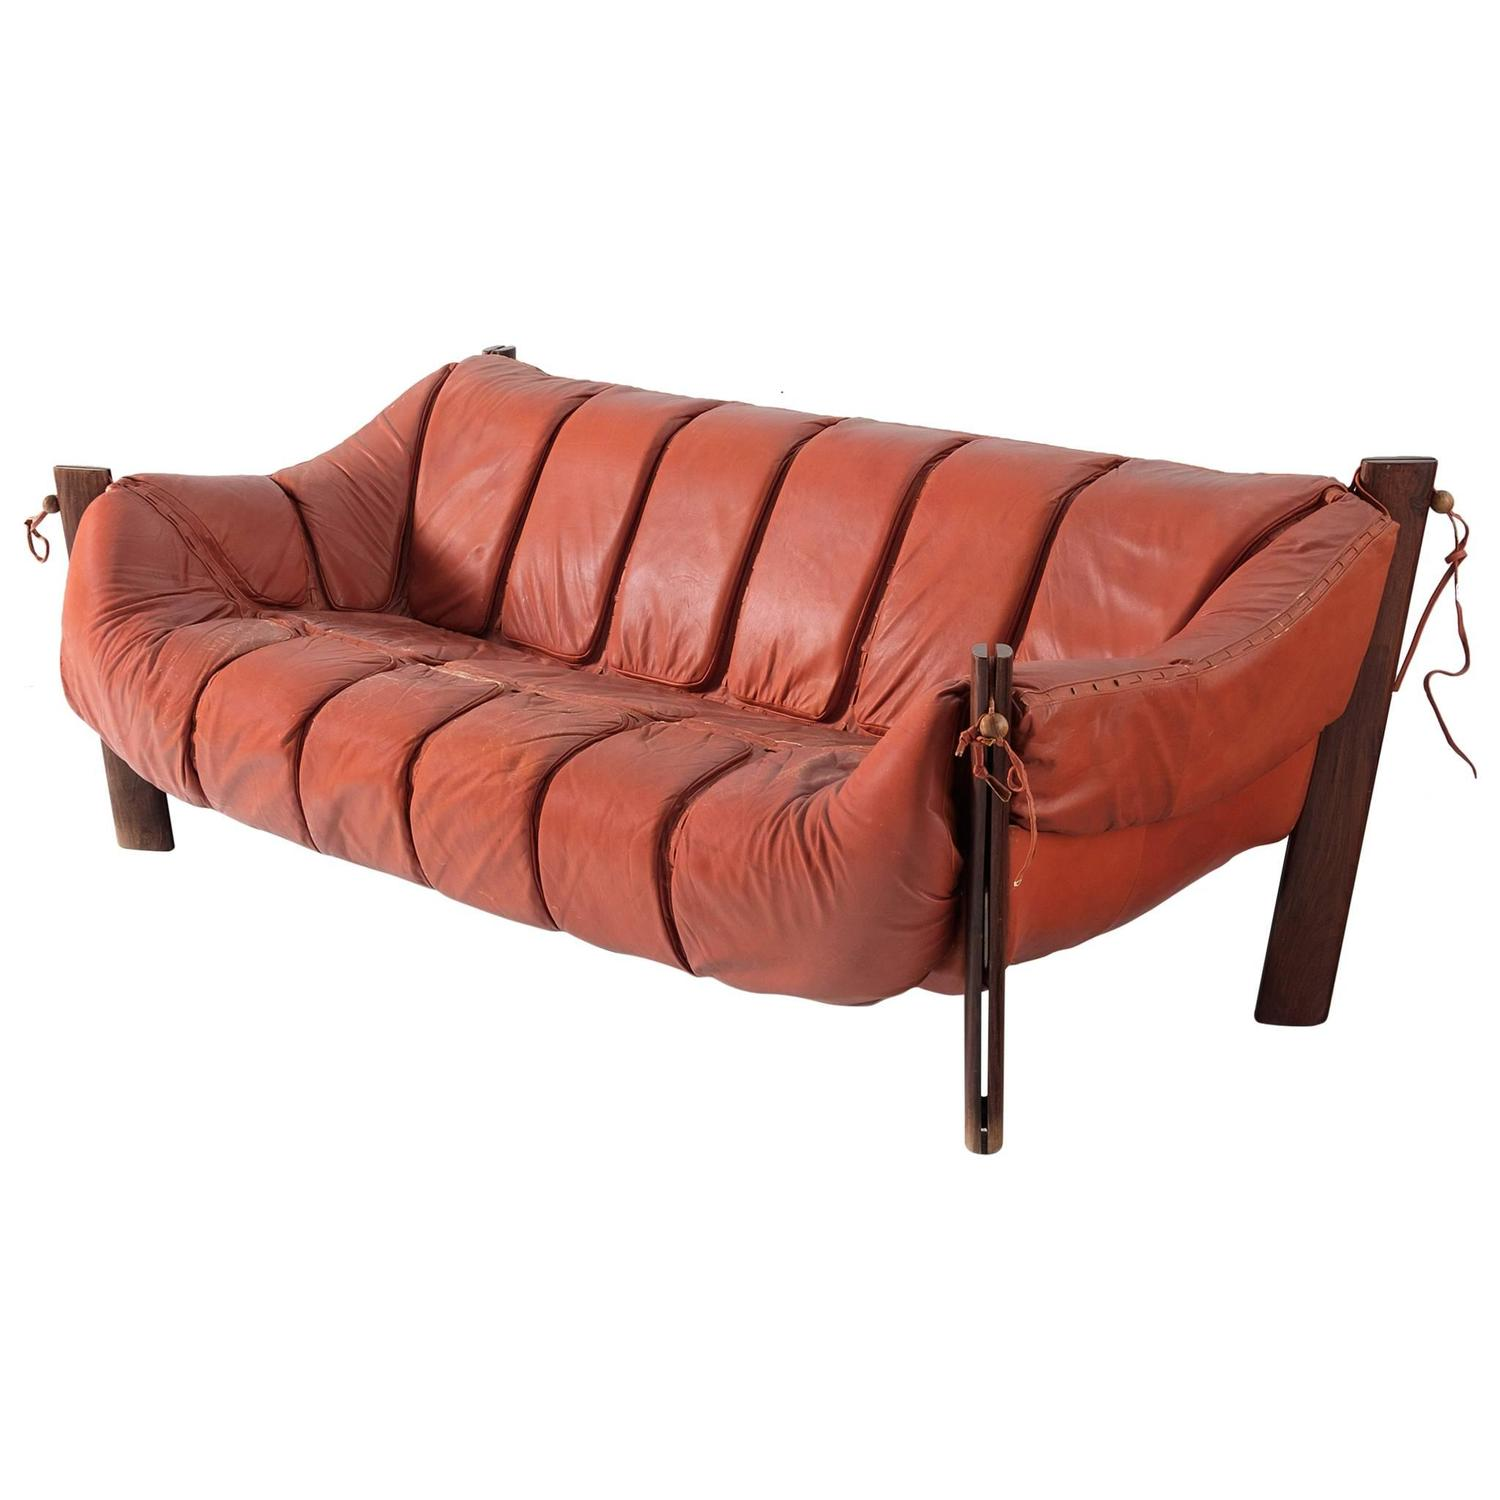 percival lafer sofa baxton studio leather sectional three seat in rosewood and for